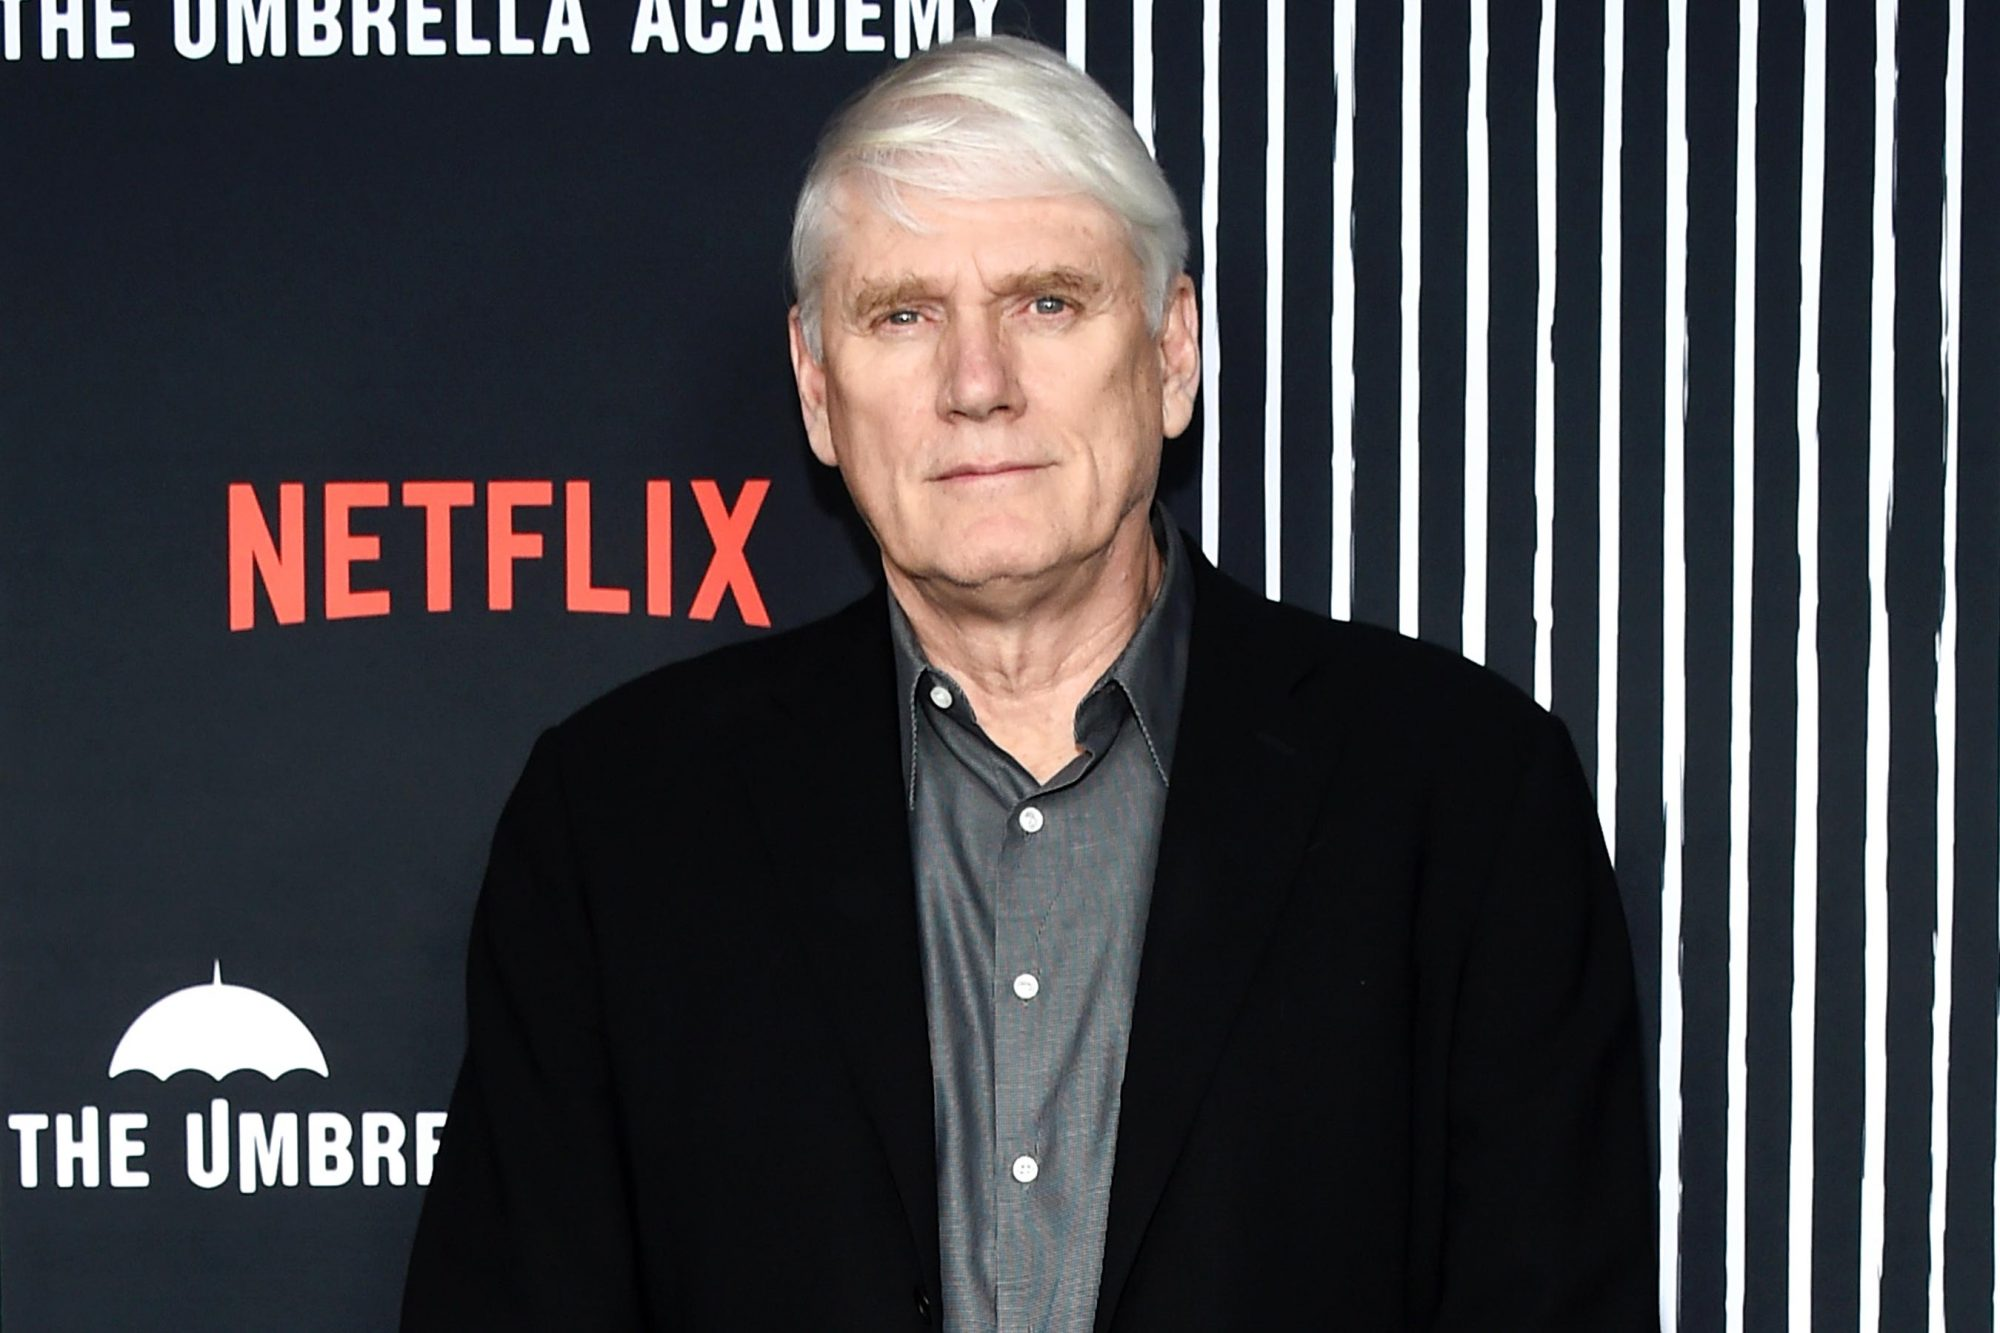 """HOLLYWOOD, CALIFORNIA - FEBRUARY 12: Mike Richardson arrives at the premiere of Netflix's """"The Umbrella Academy"""" at the ArcLight Hollywood on February 12, 2019 in Hollywood, California. (Photo by Amanda Edwards/WireImage)"""